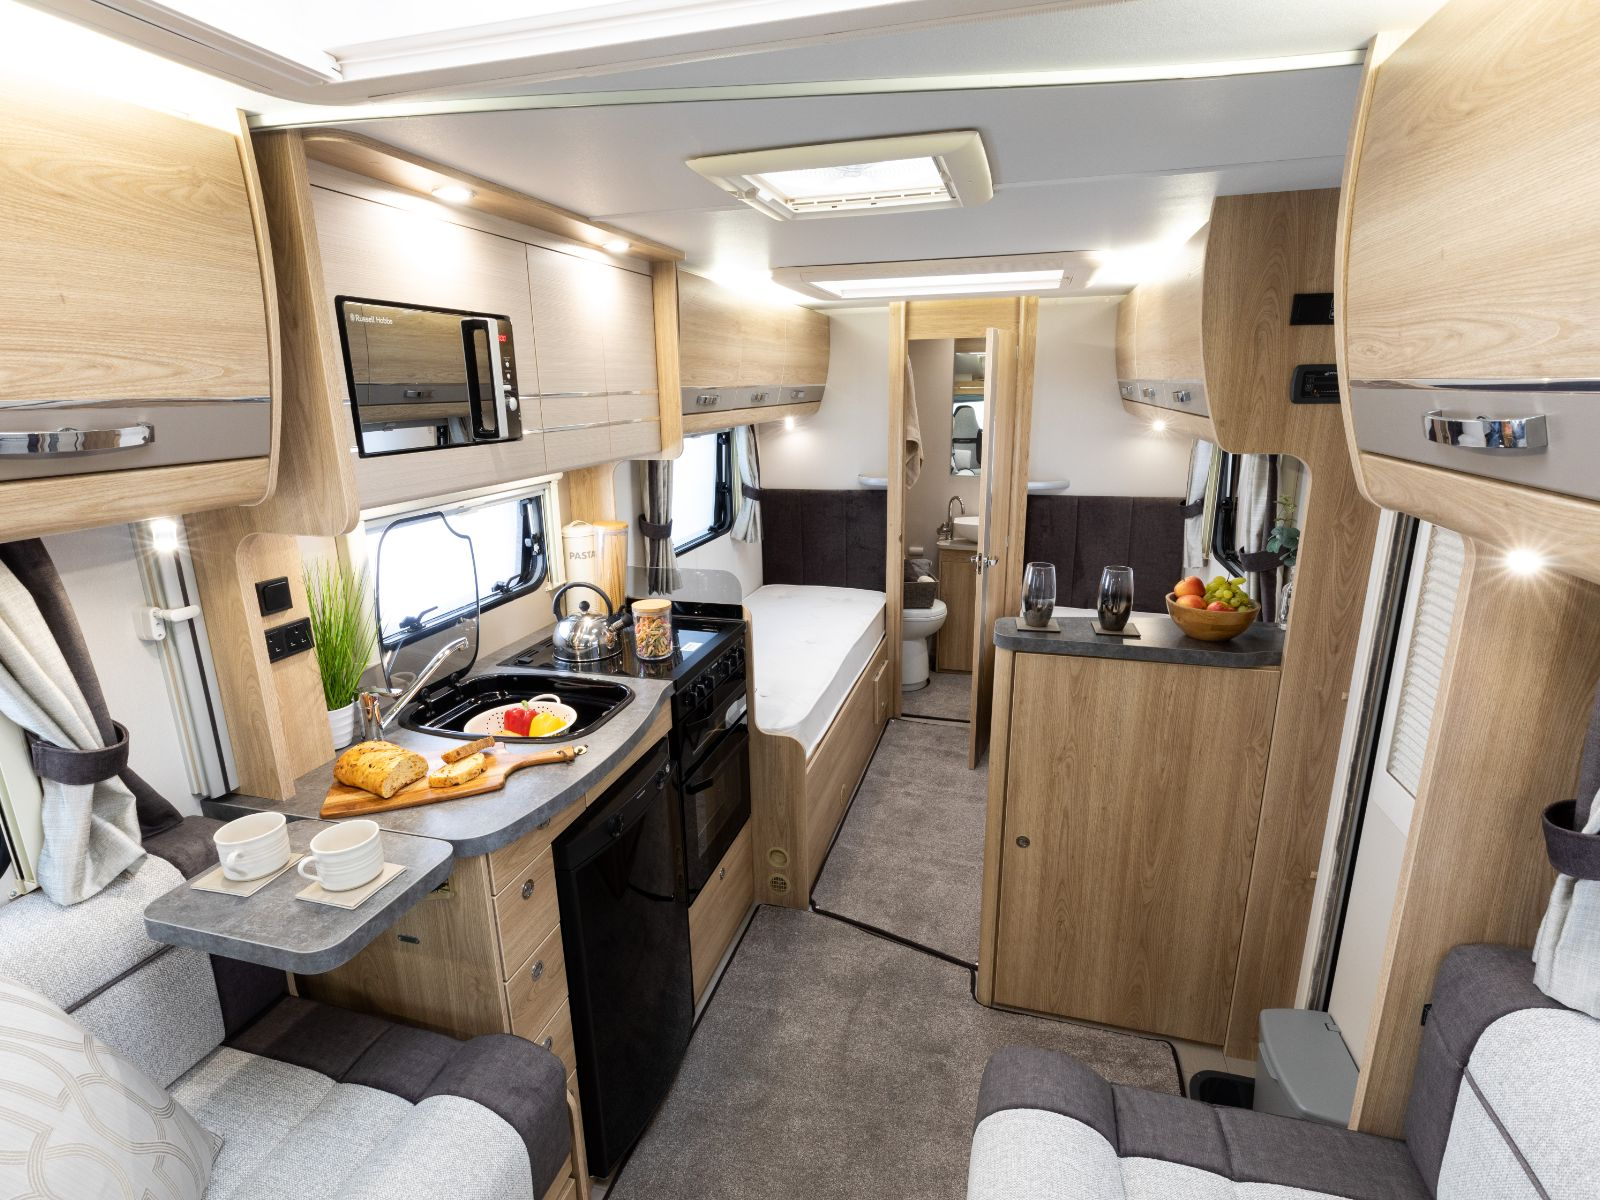 Riva Gold Motorhome Kitchen Area with Bedroom View Featuring Two Single Beds'